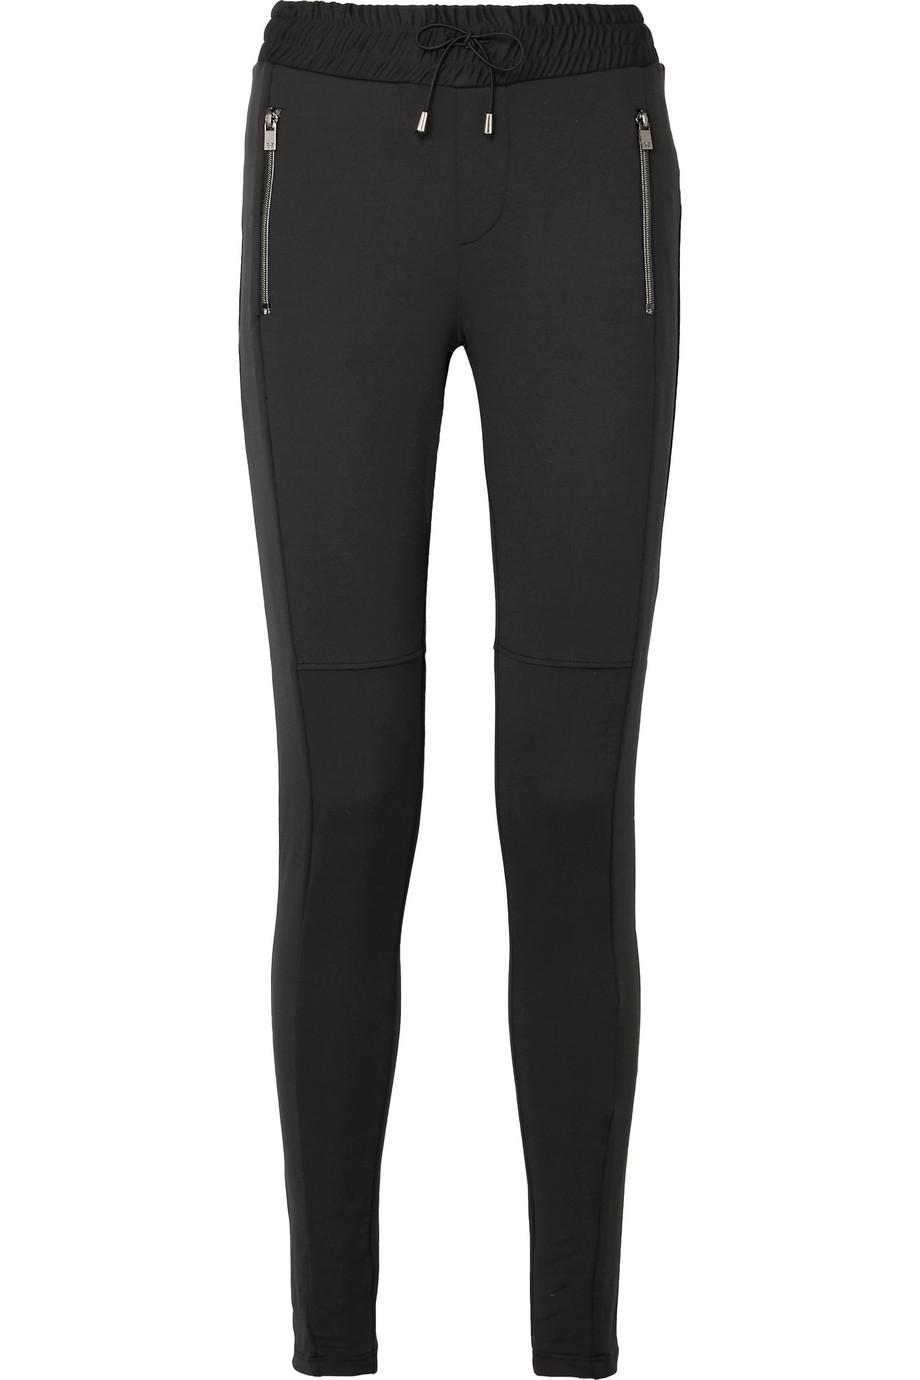 Clearance Store Cheap Online Power Stretch-jersey Track Pants - Black Heroine Sport Sale Big Sale Outlet Locations Cheap Online 2018 Sale Online fGEDcagQn